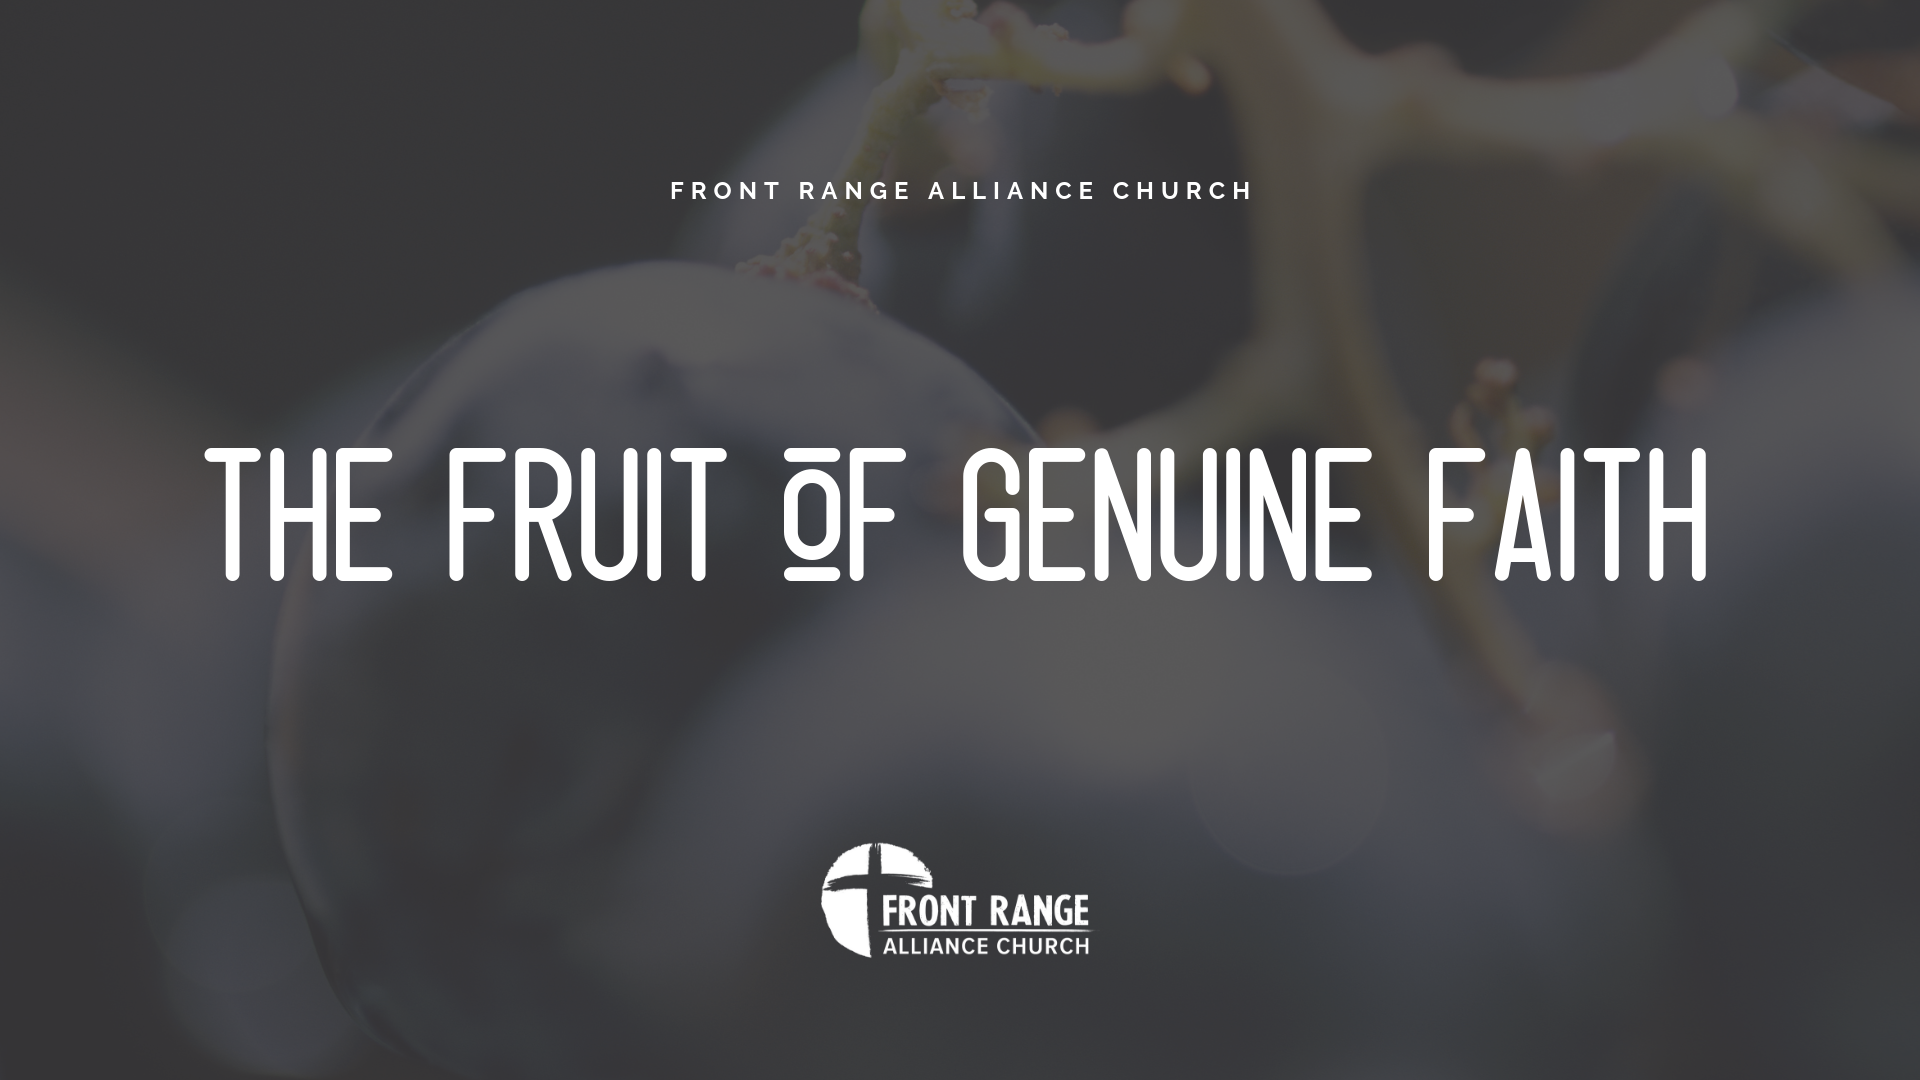 The Fruit of Genuine Faith